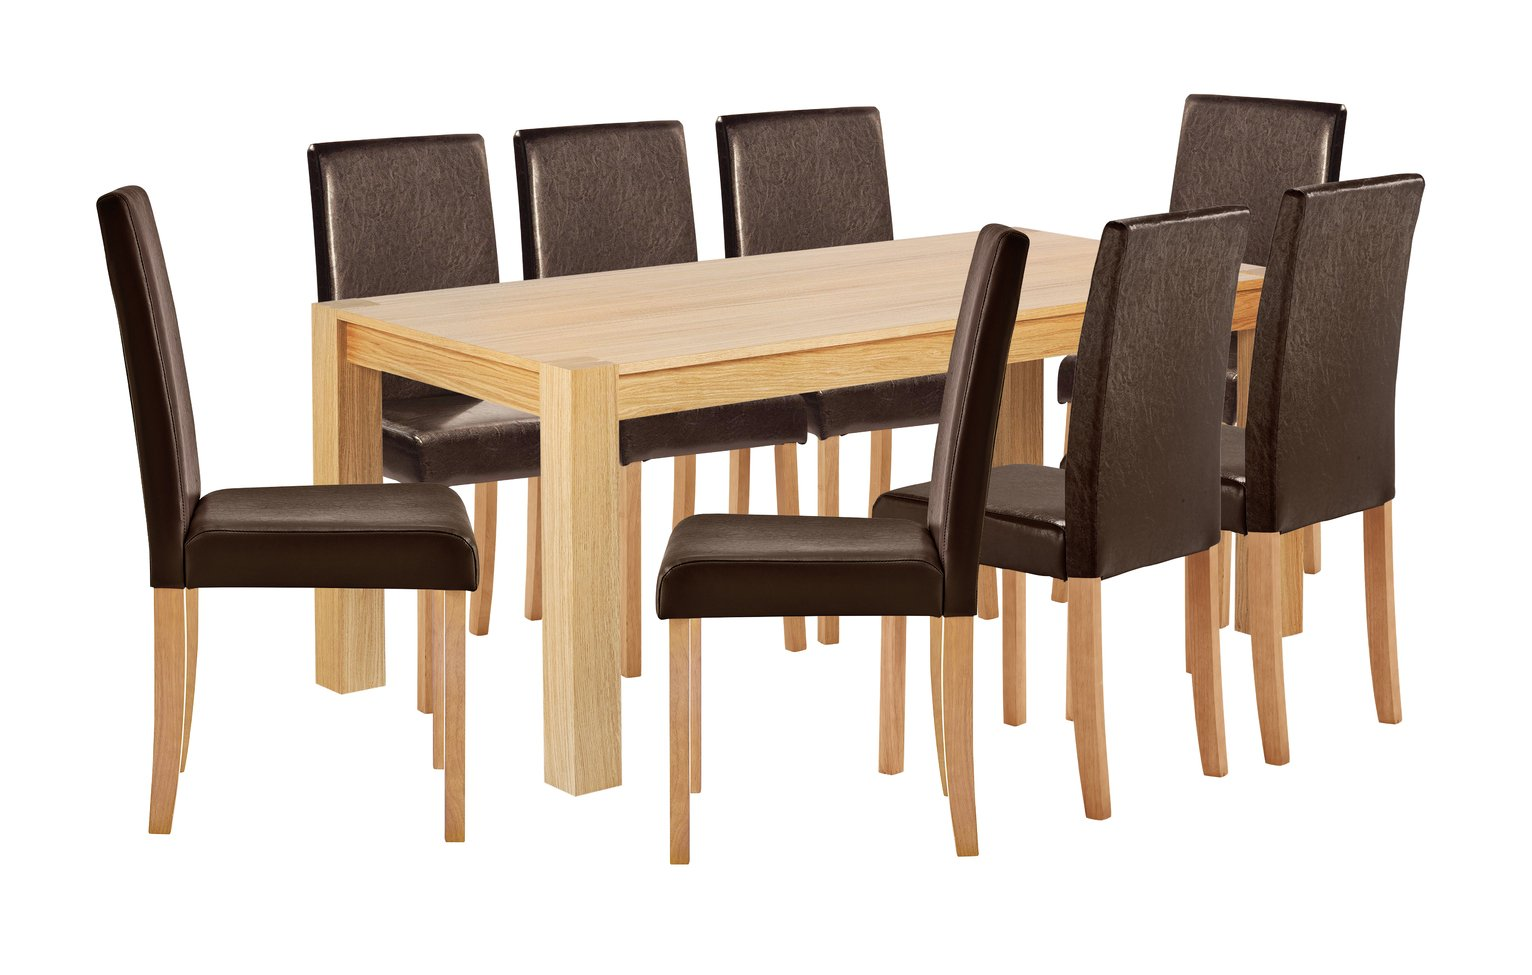 Collection Indiana Solid Oak Table & 8 Chairs - Chocolate